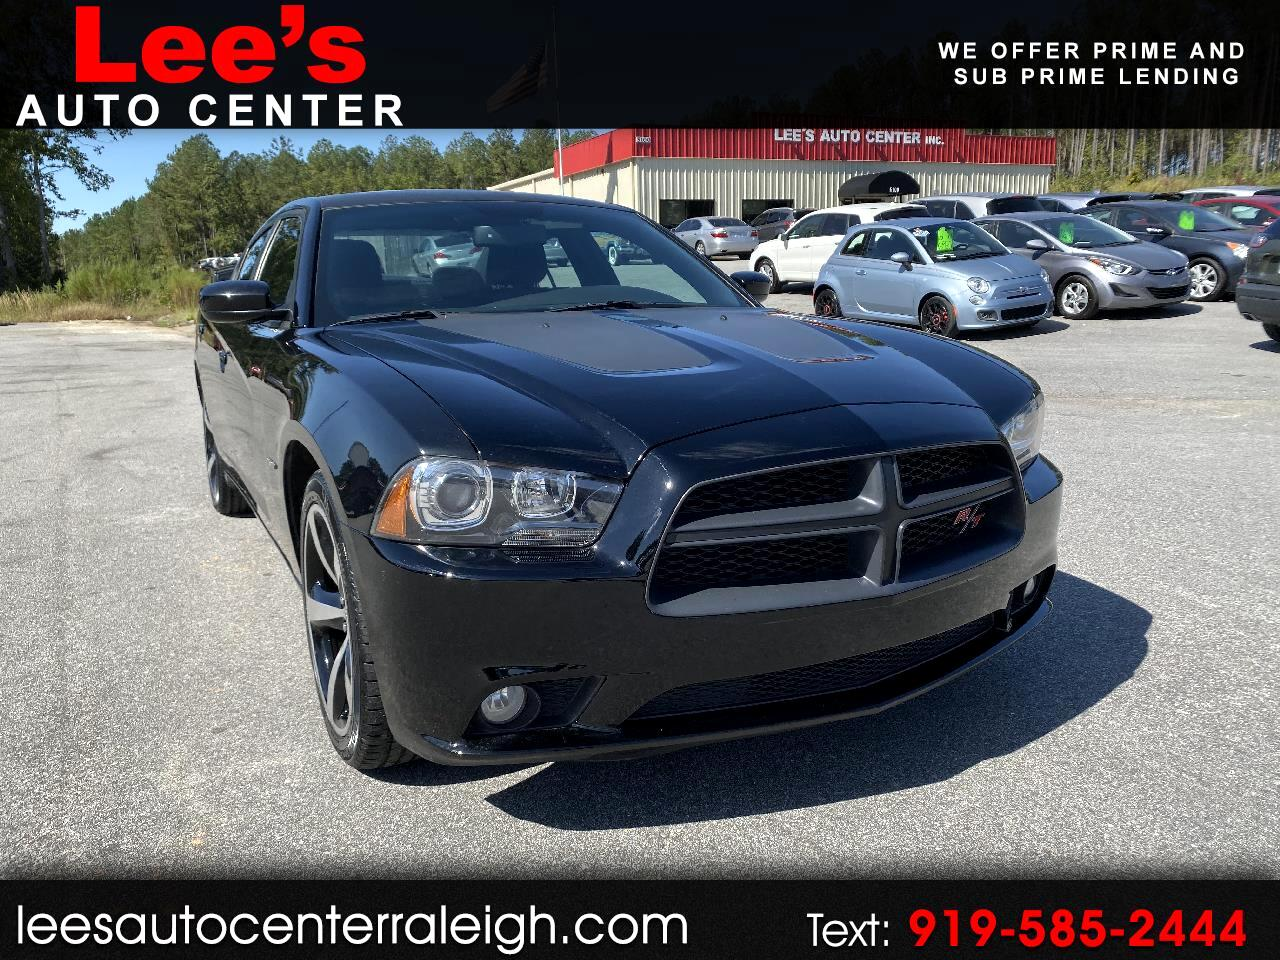 2013 Dodge Charger R/T DAYTONA EDITION!!!!